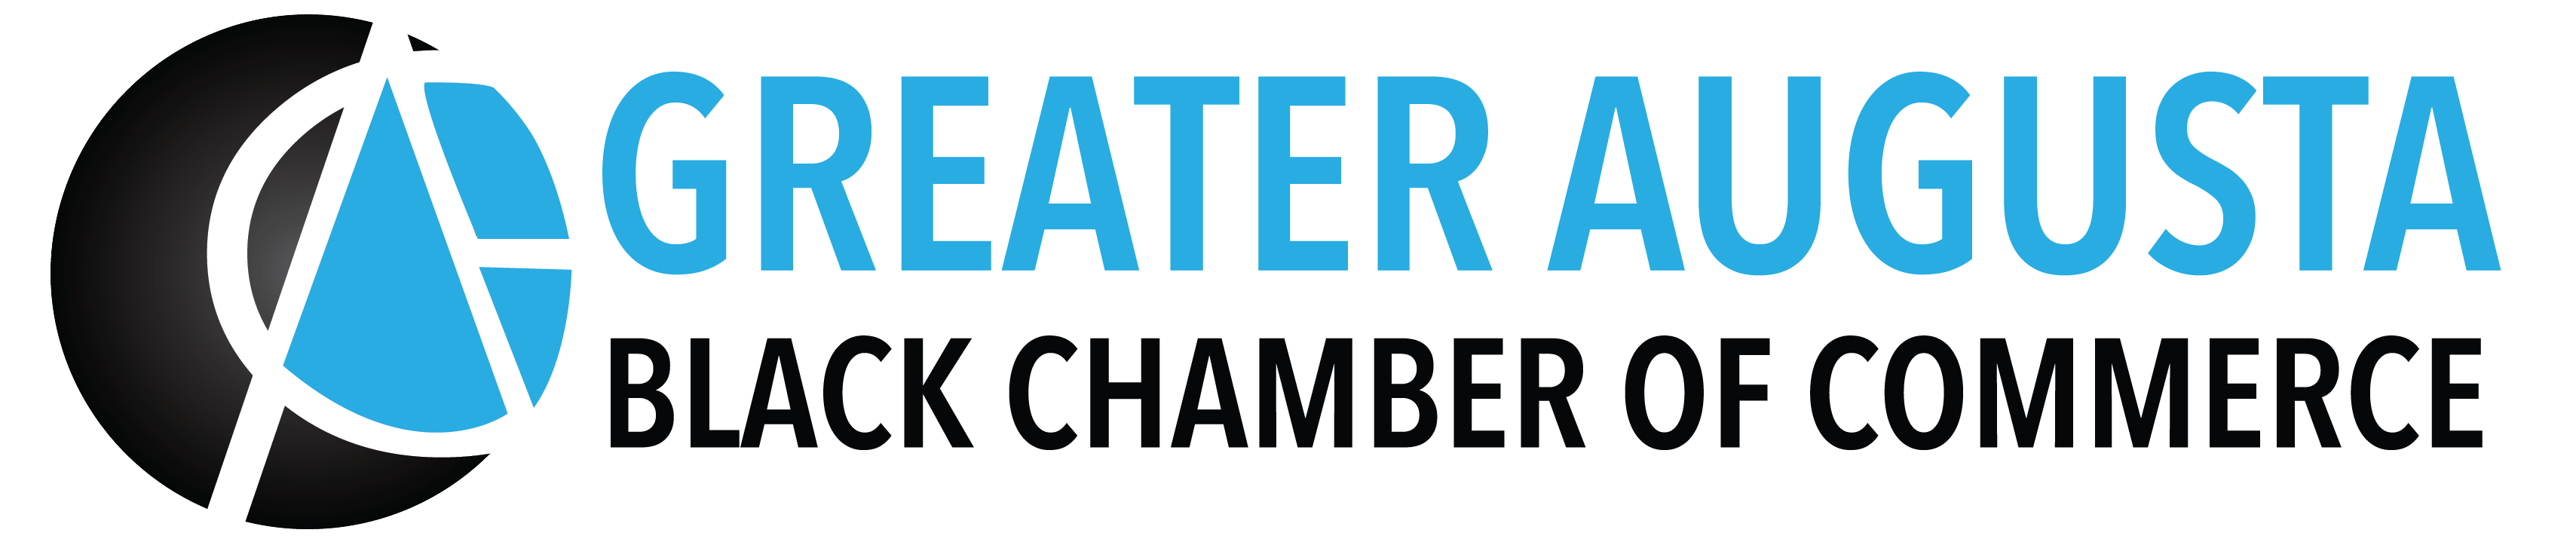 The Greater Augusta Black Chamber of Commerce